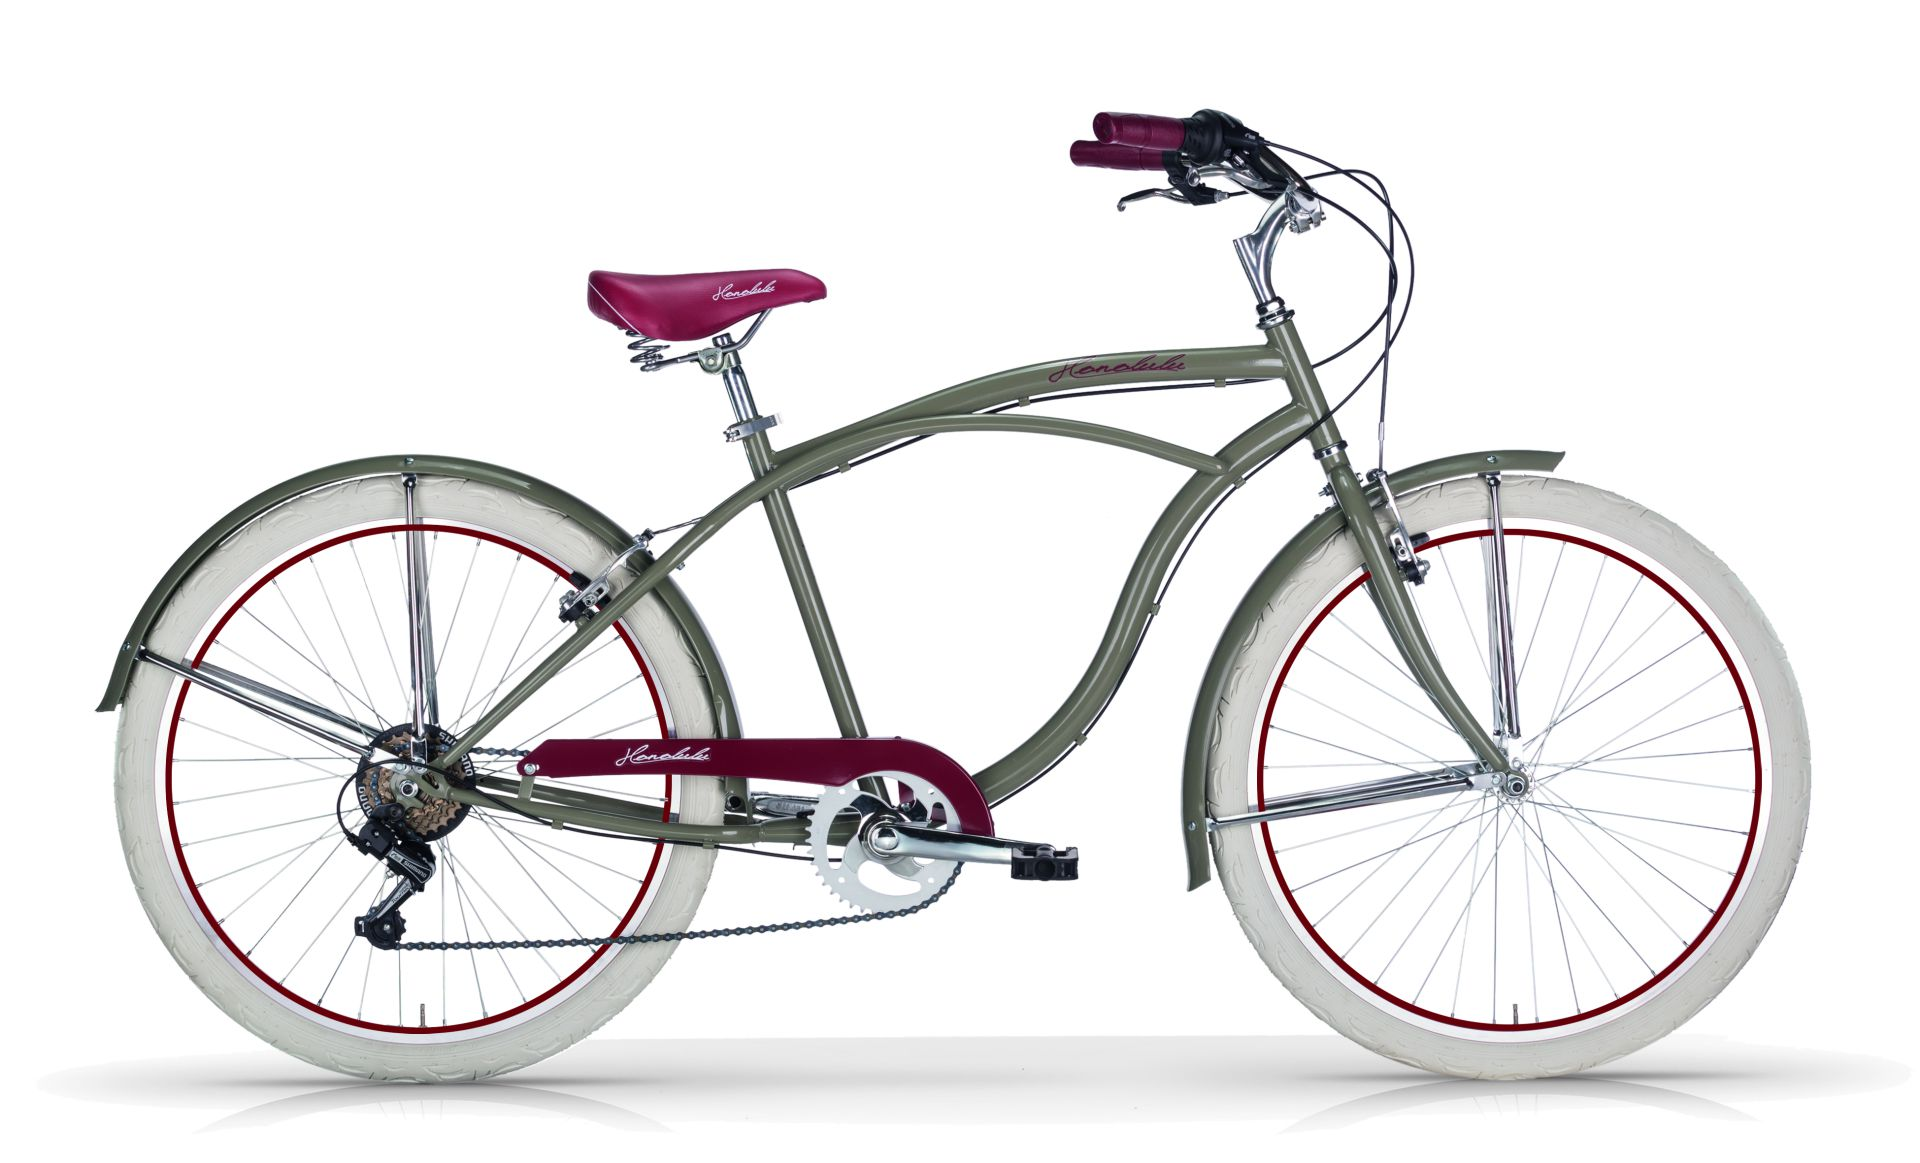 Bici Cruiser Uomo Mbm Honolulu 26 6v